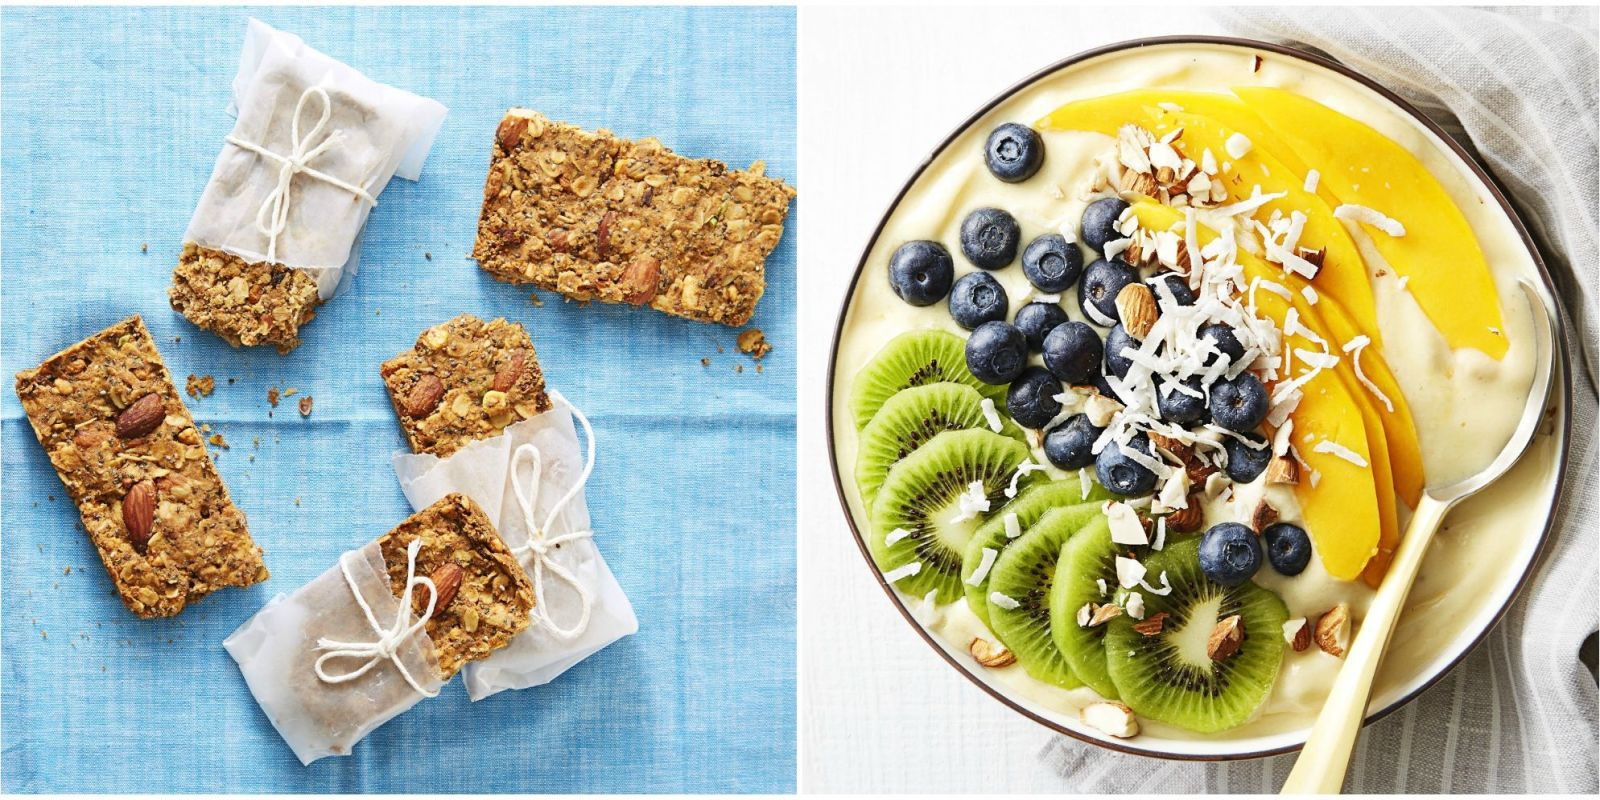 Healthy And Quick Breakfast  48 Easy Healthy Breakfast Ideas Recipes for Quick and